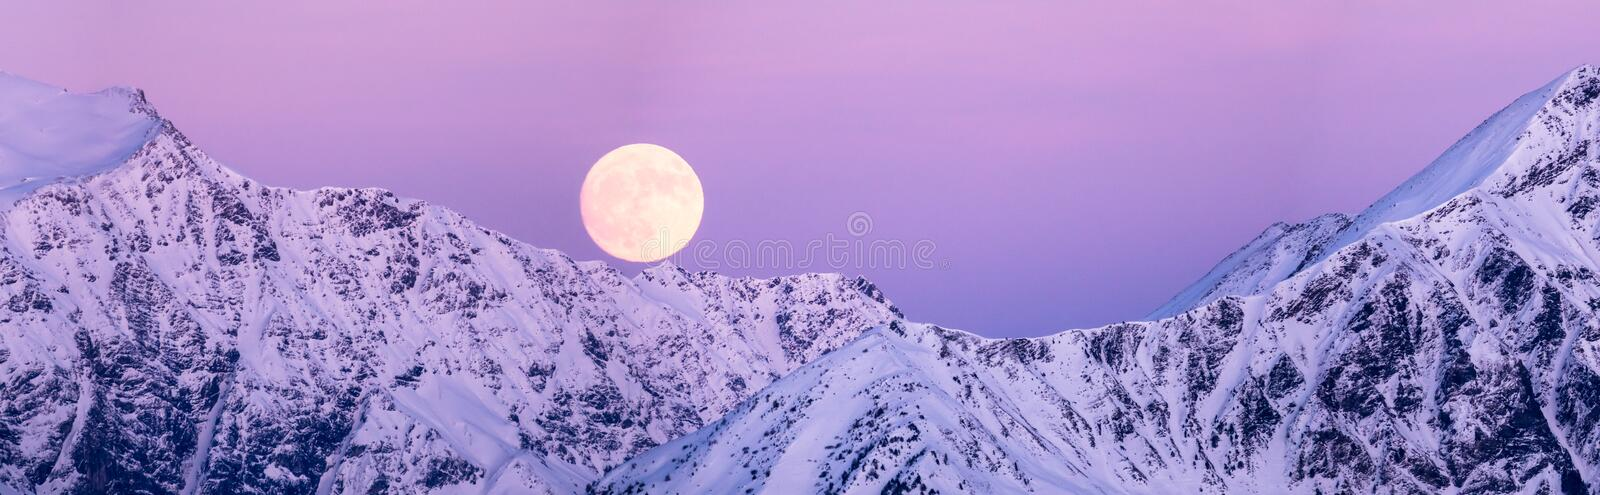 Full moon rising over a winter mountain landscape royalty free stock photo